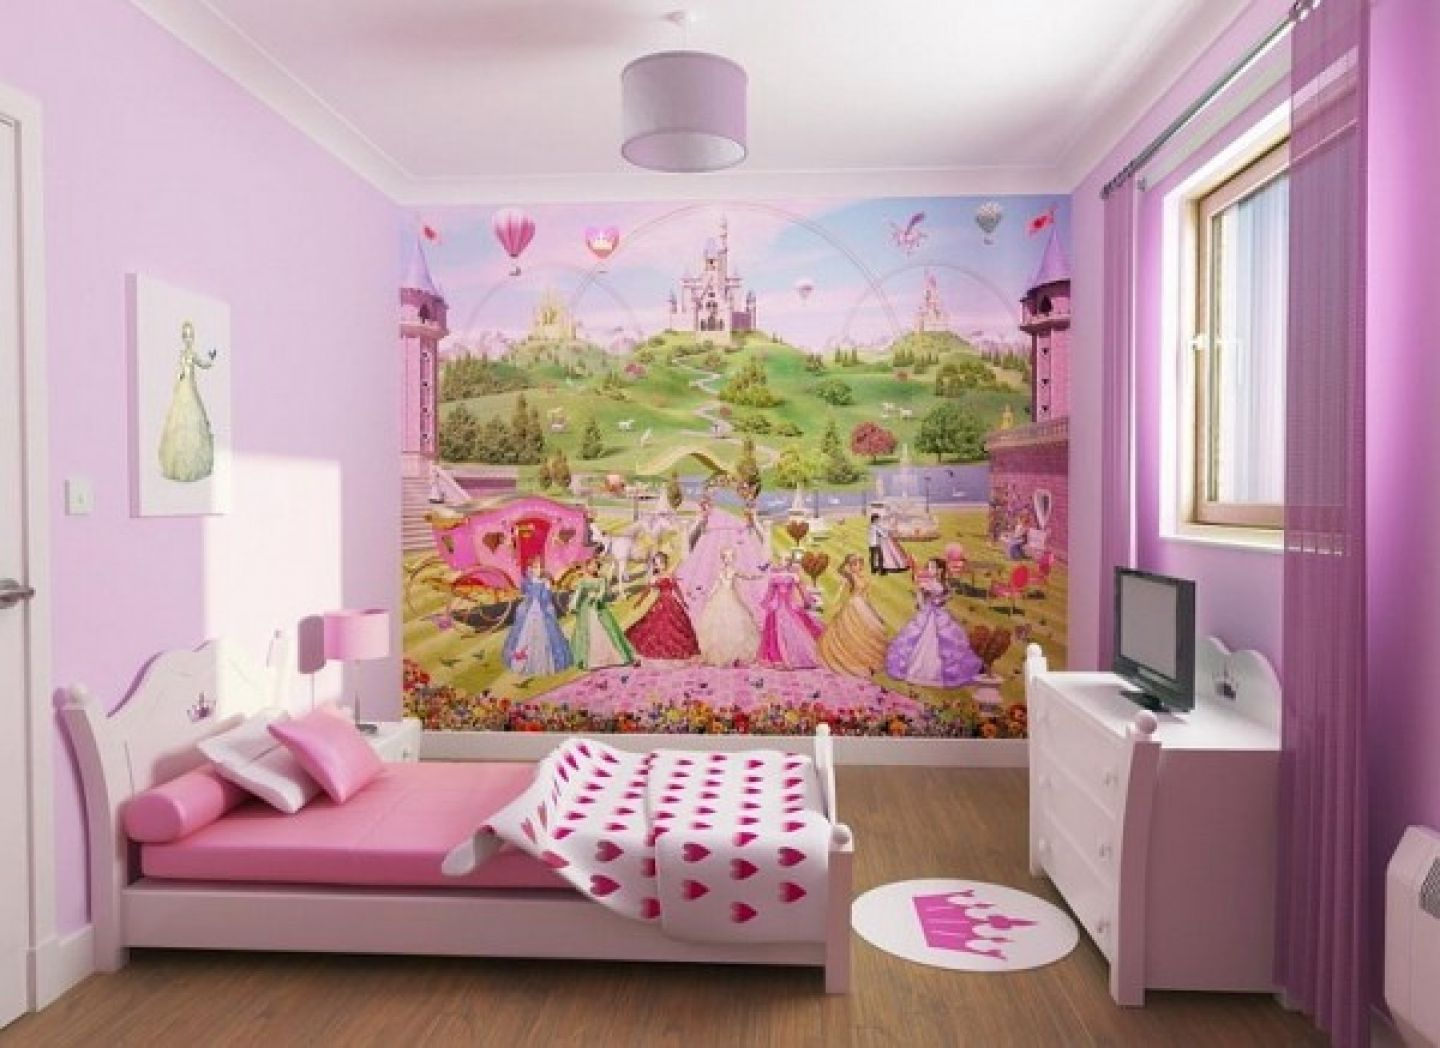 Girls Bedroom Decorating Ideas Magnificent Girls' Bedroom Style  Bedrooms Small Bedroom Decorating And Room Decorating Design